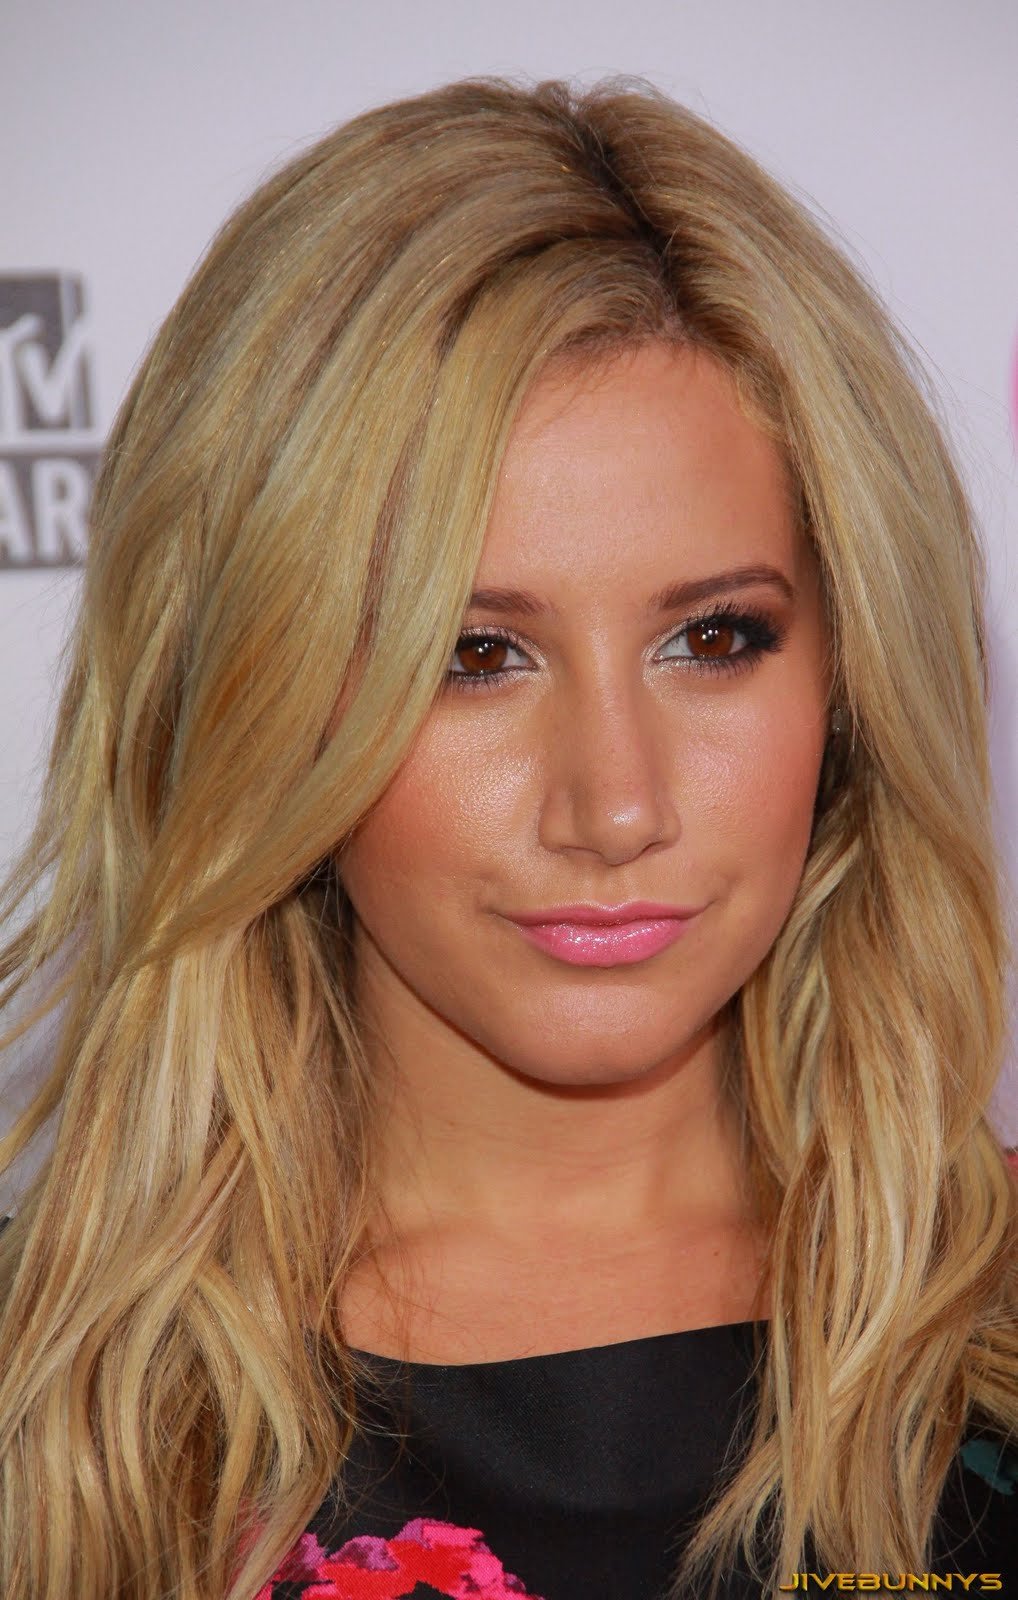 38. Ashley Tisdale nudes (65 photos), Topless, Leaked, Feet, braless 2019